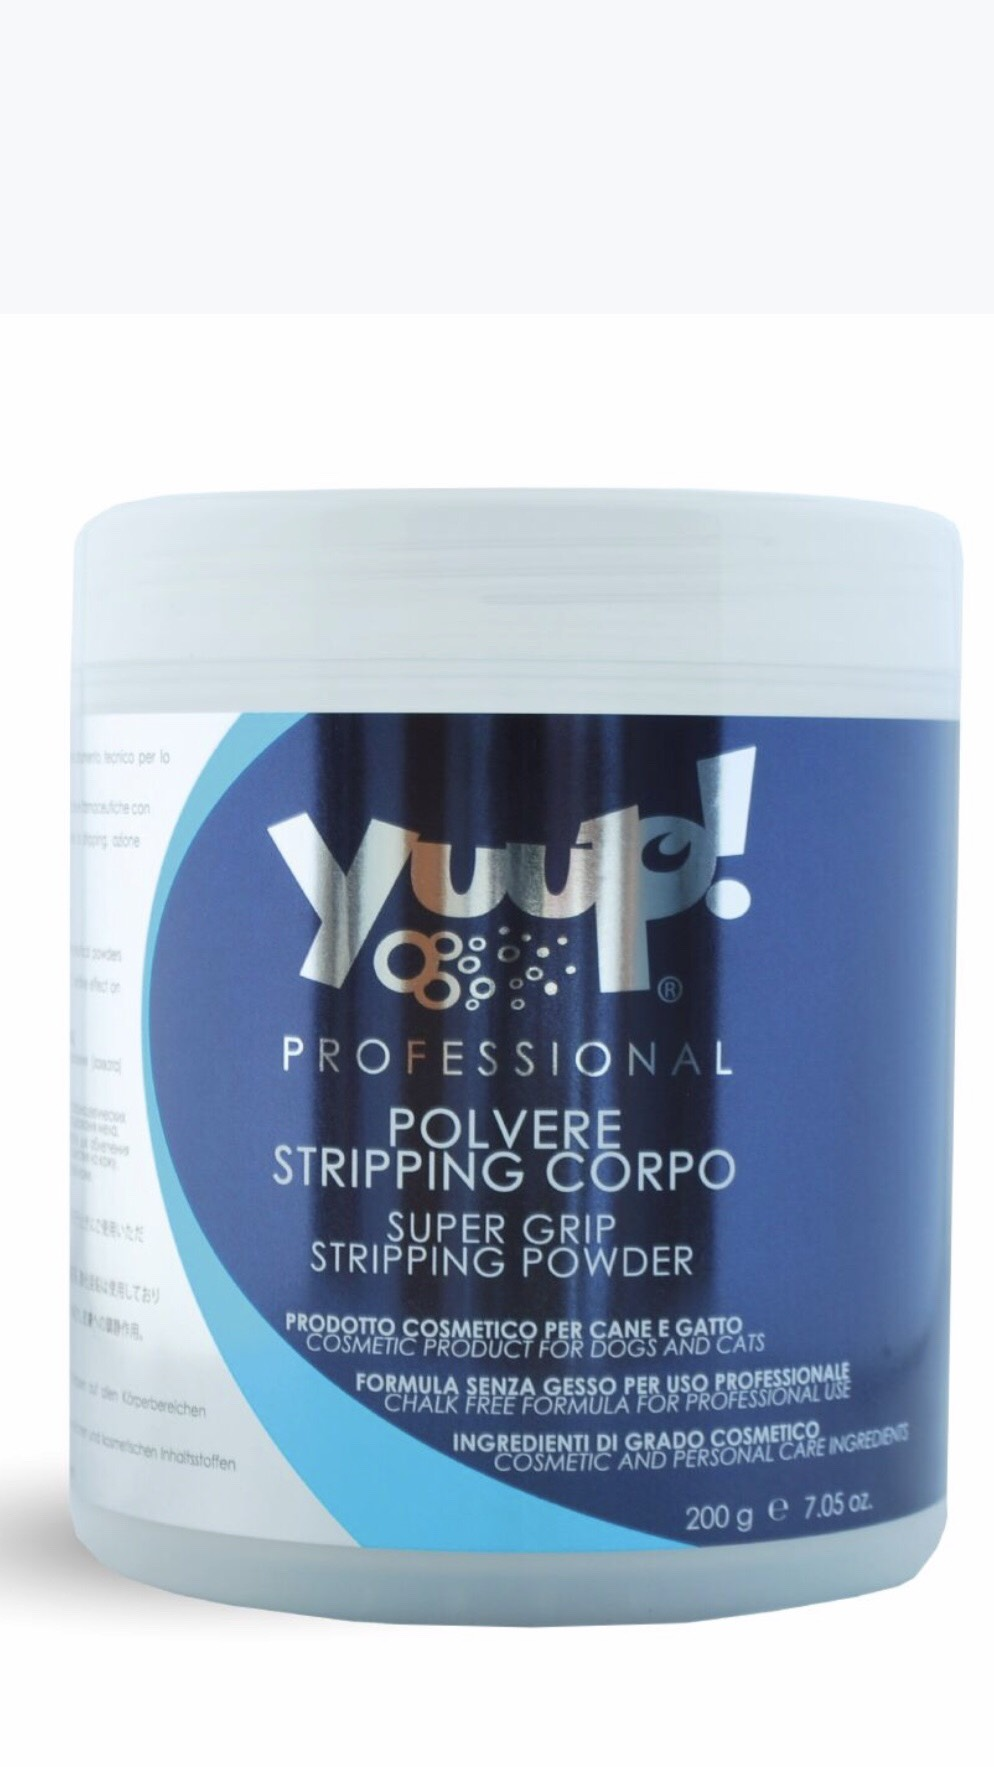 Super Grip Stripping Powder